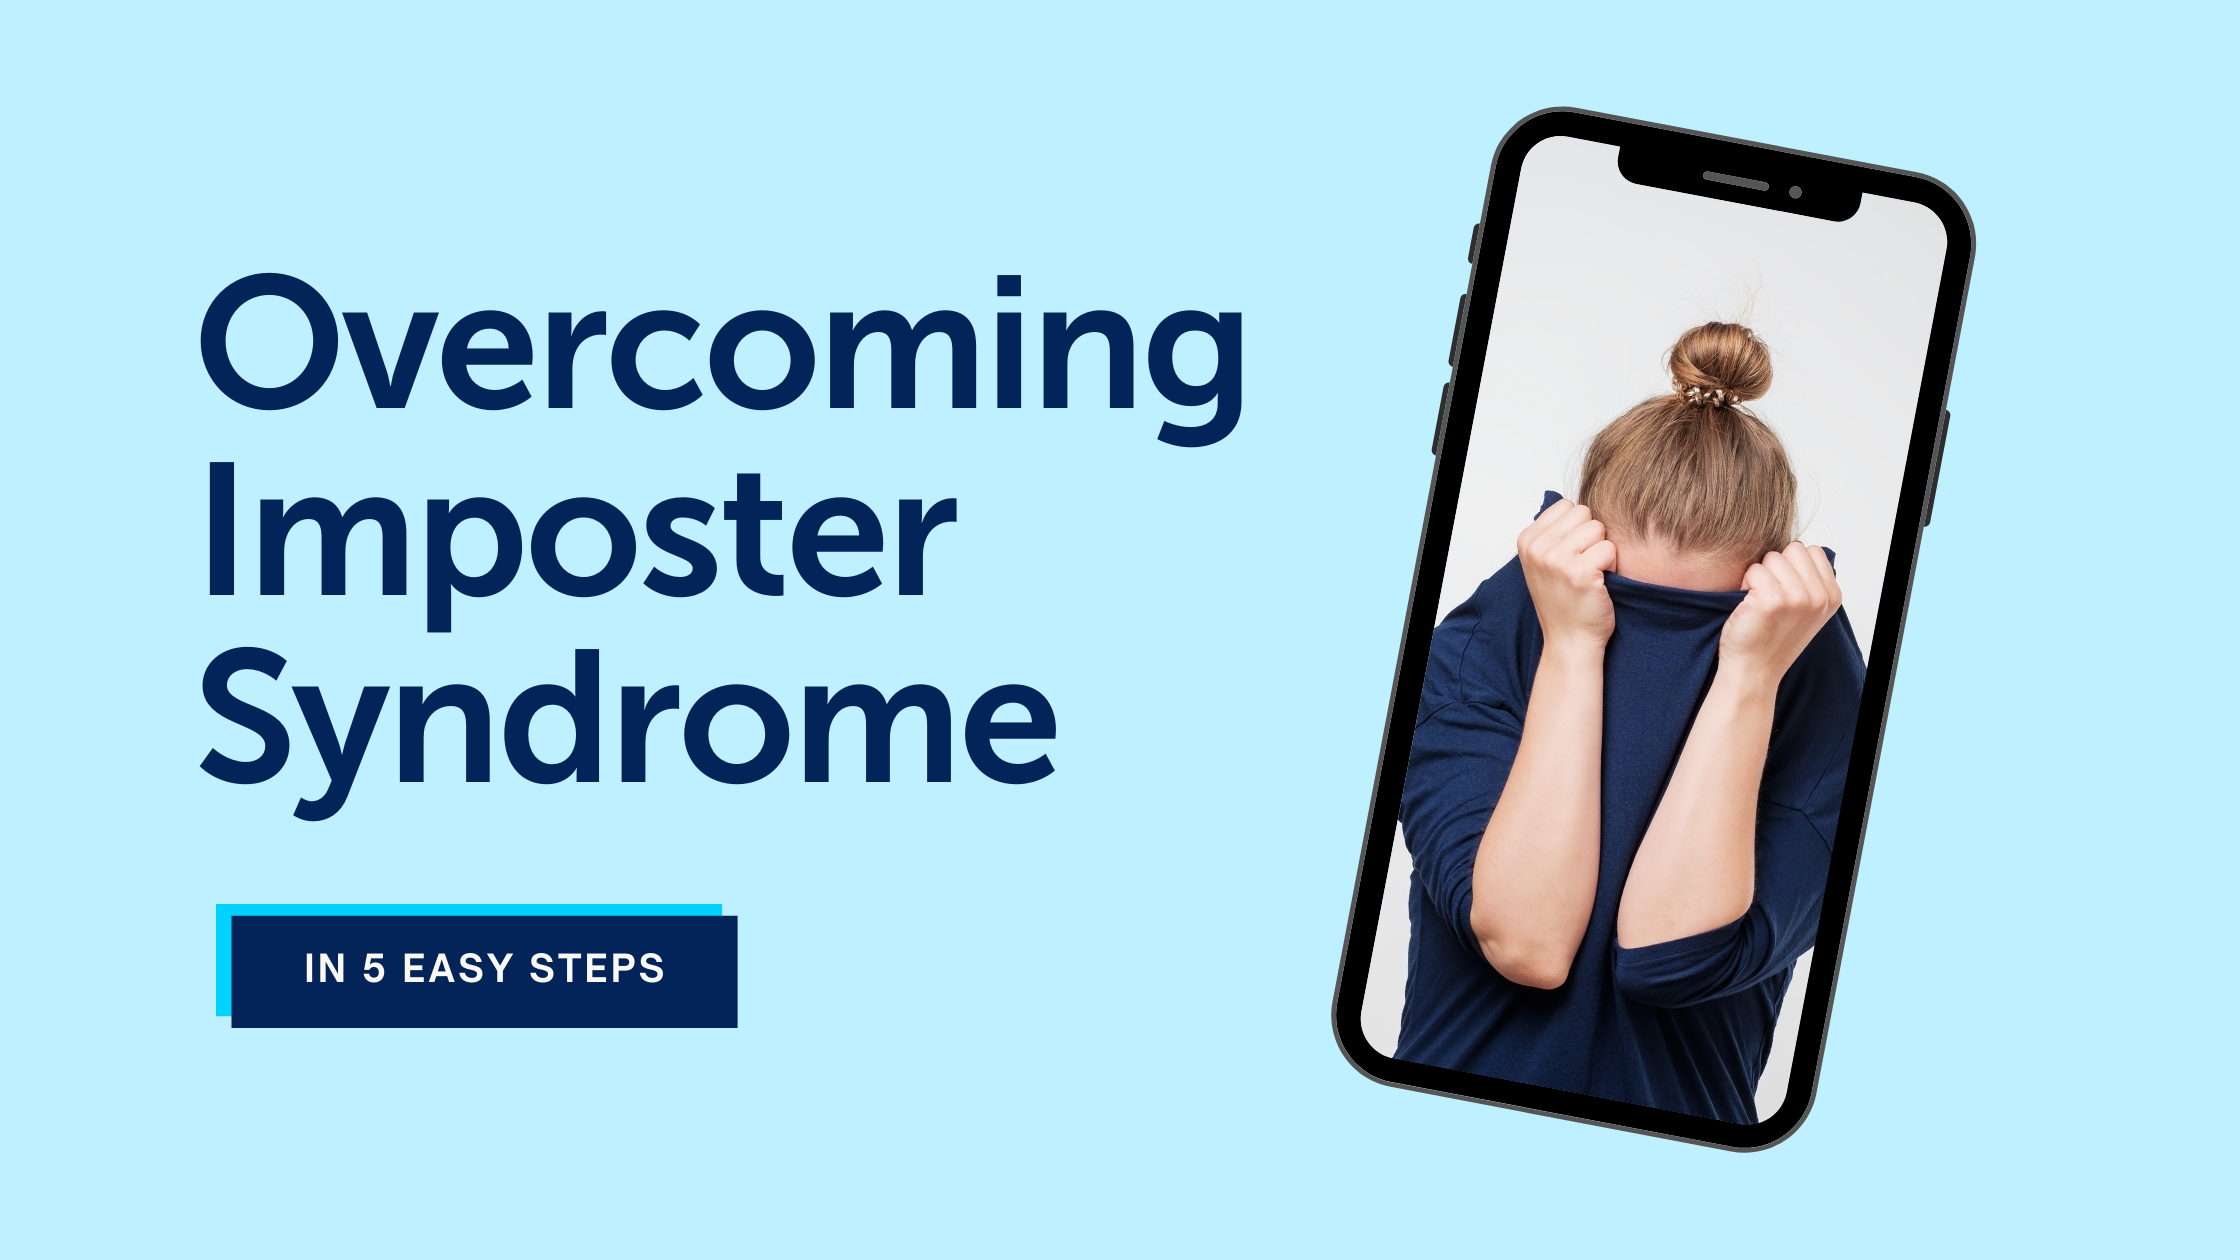 Overcoming Imposter Syndrome text with photo of woman hiding in her shirt